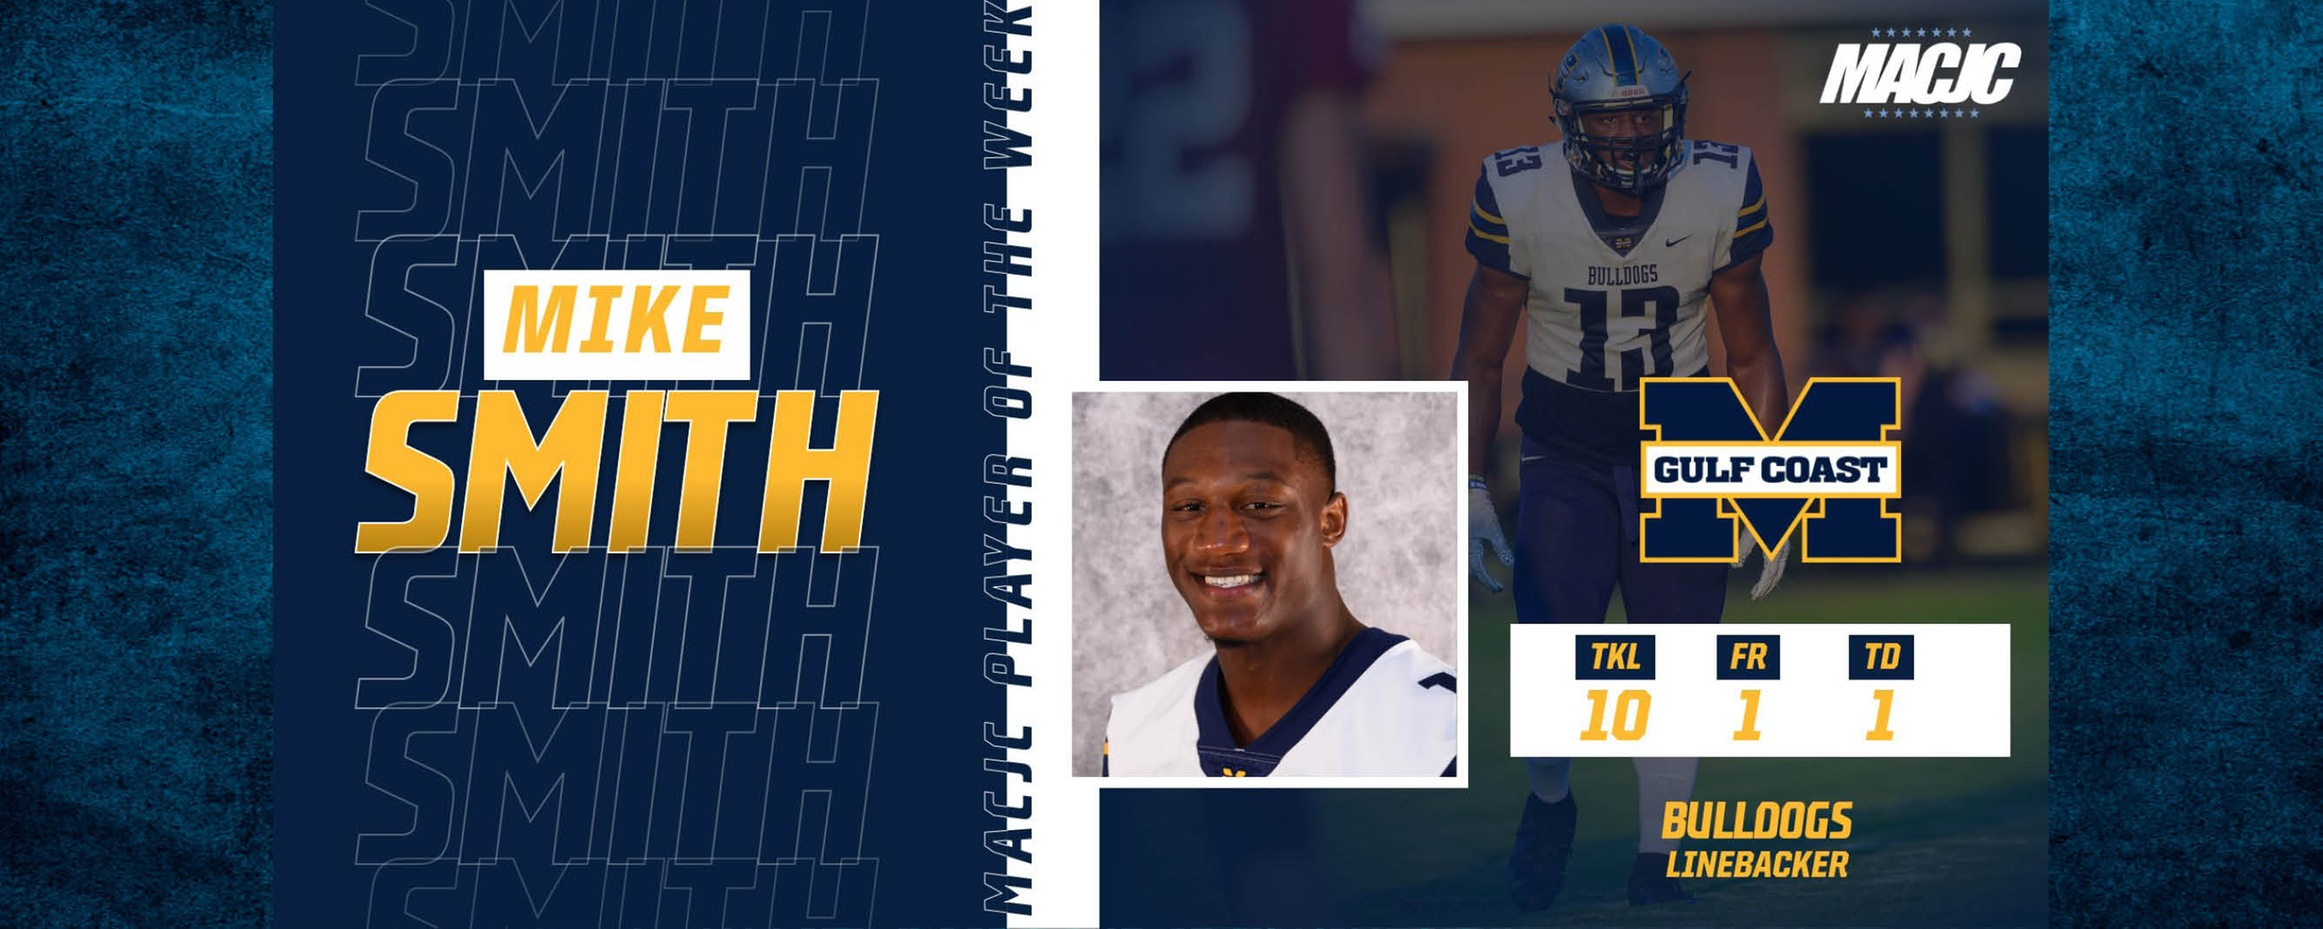 Smith named MACJC Defensive Player of the Week